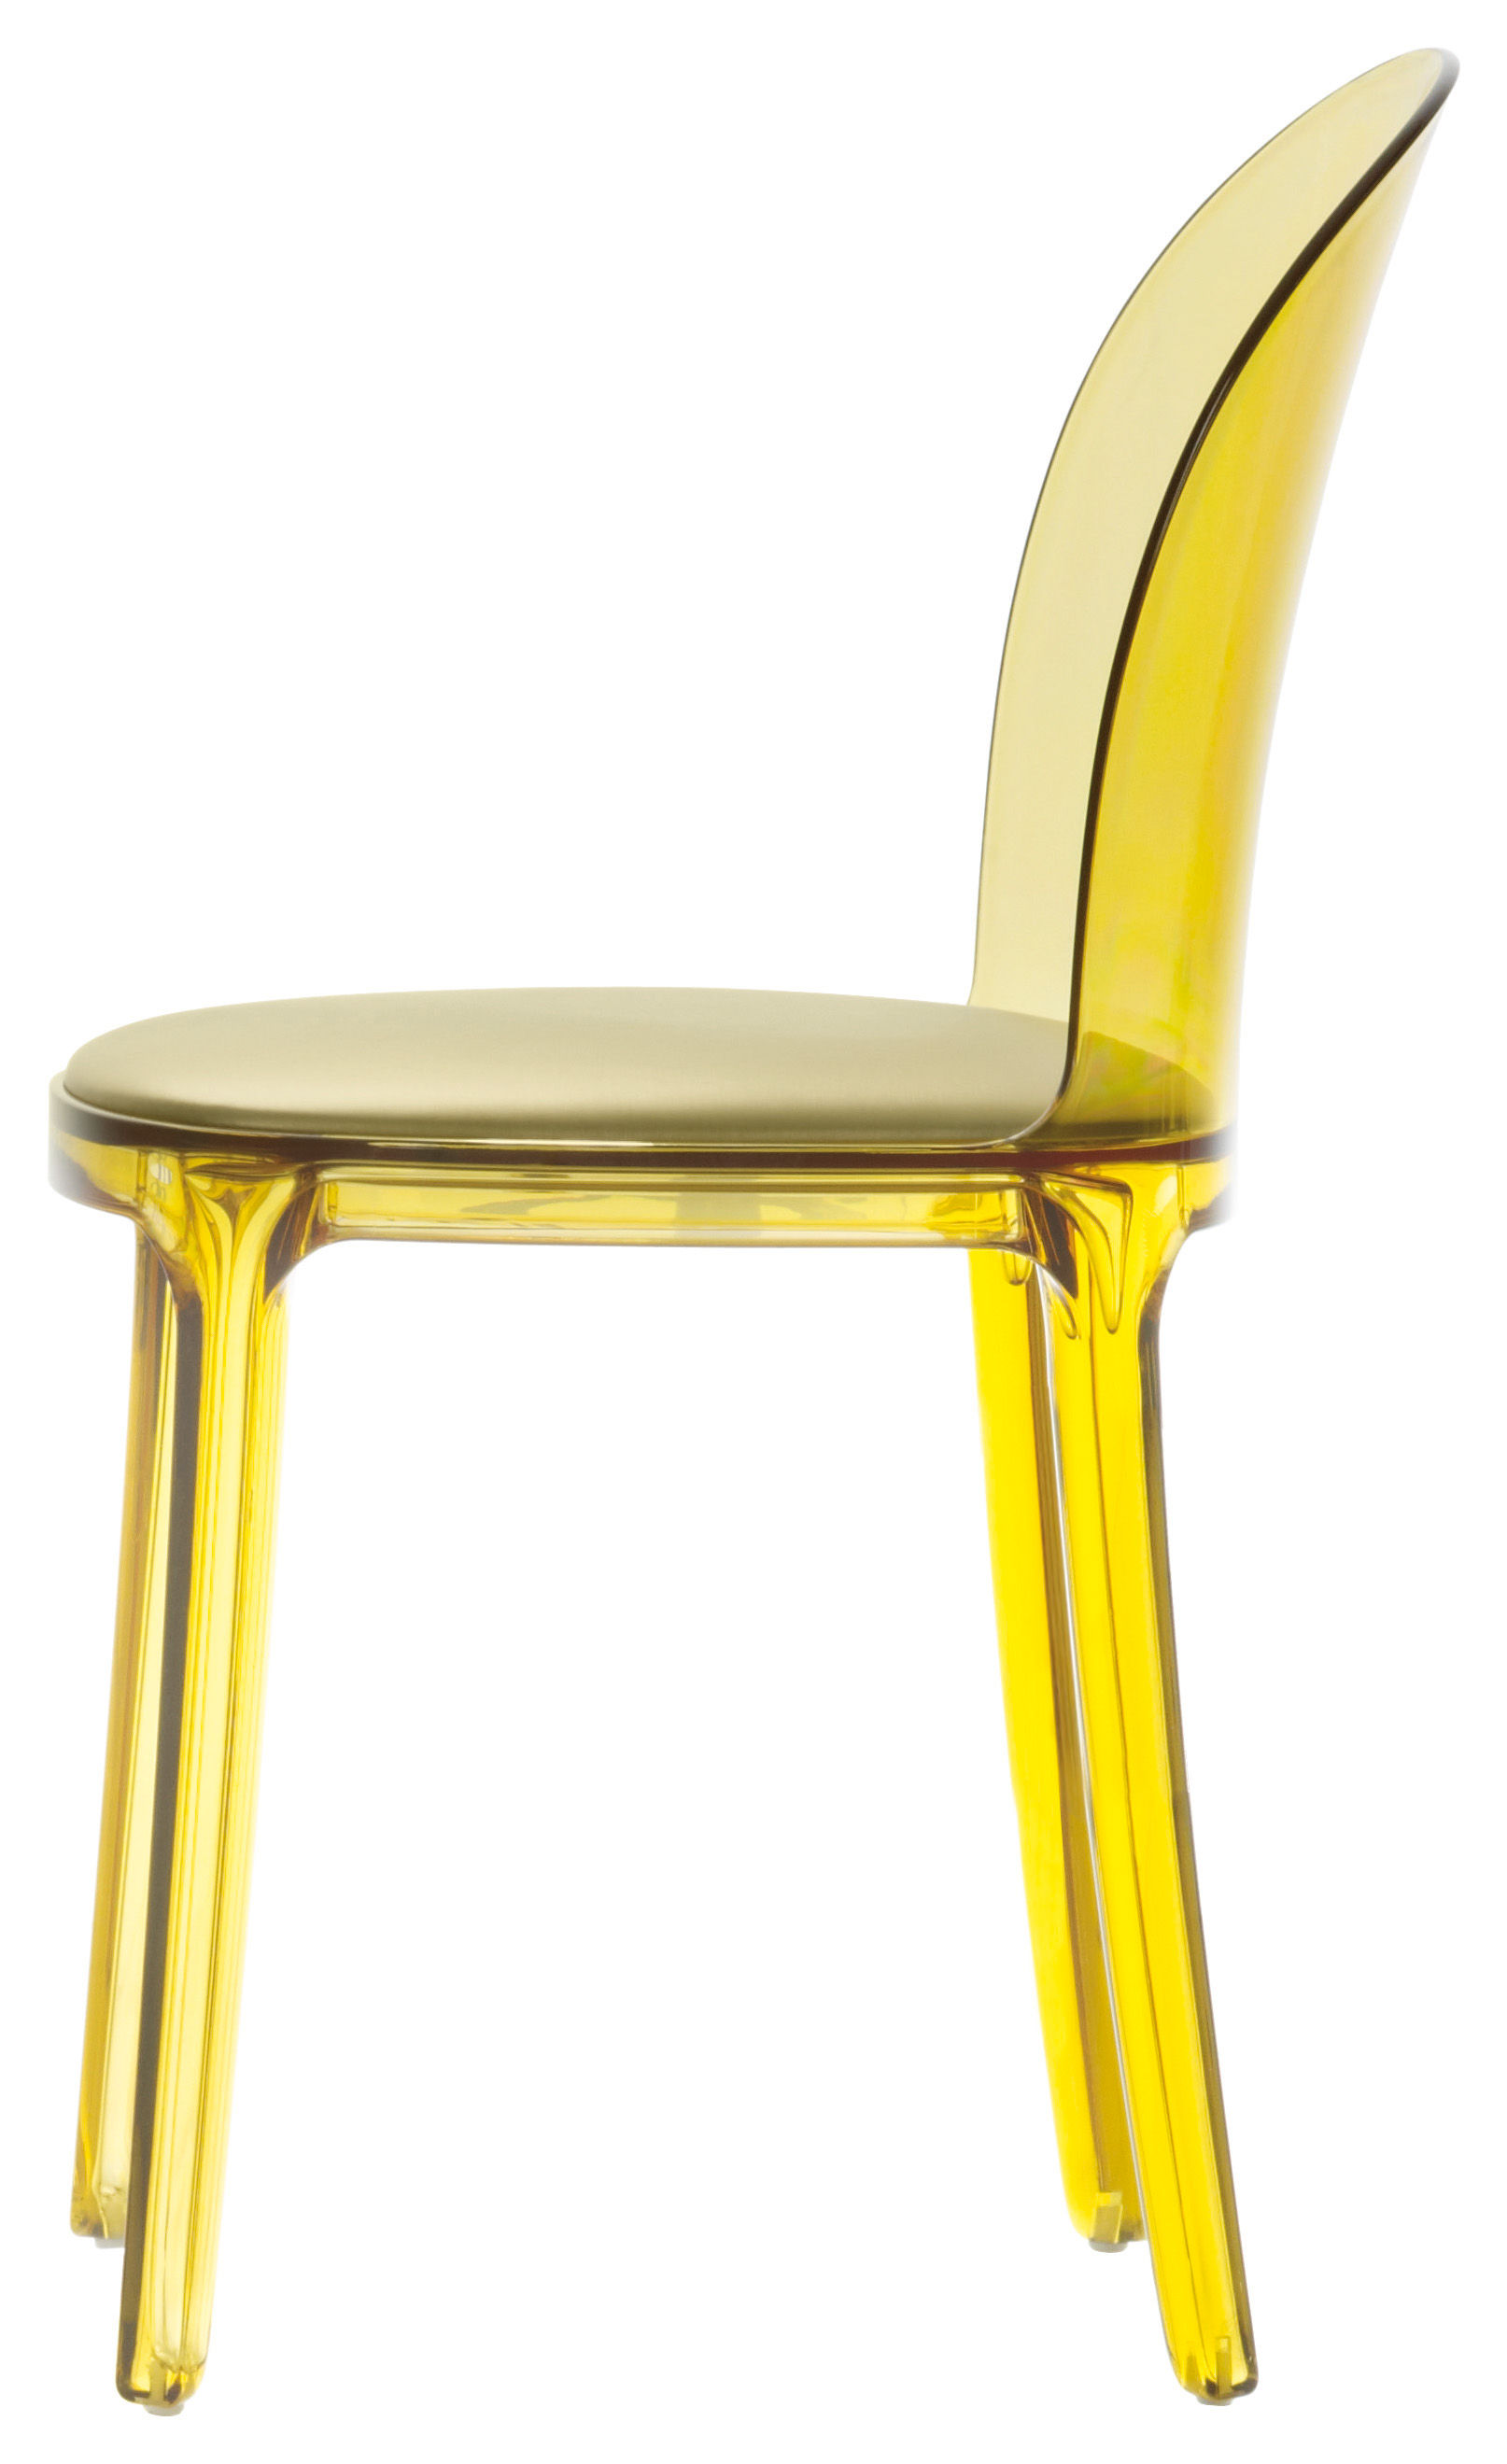 Gold Vanity Chair Murano Vanity Chair Chair Polycarbonate And Fabric Seat